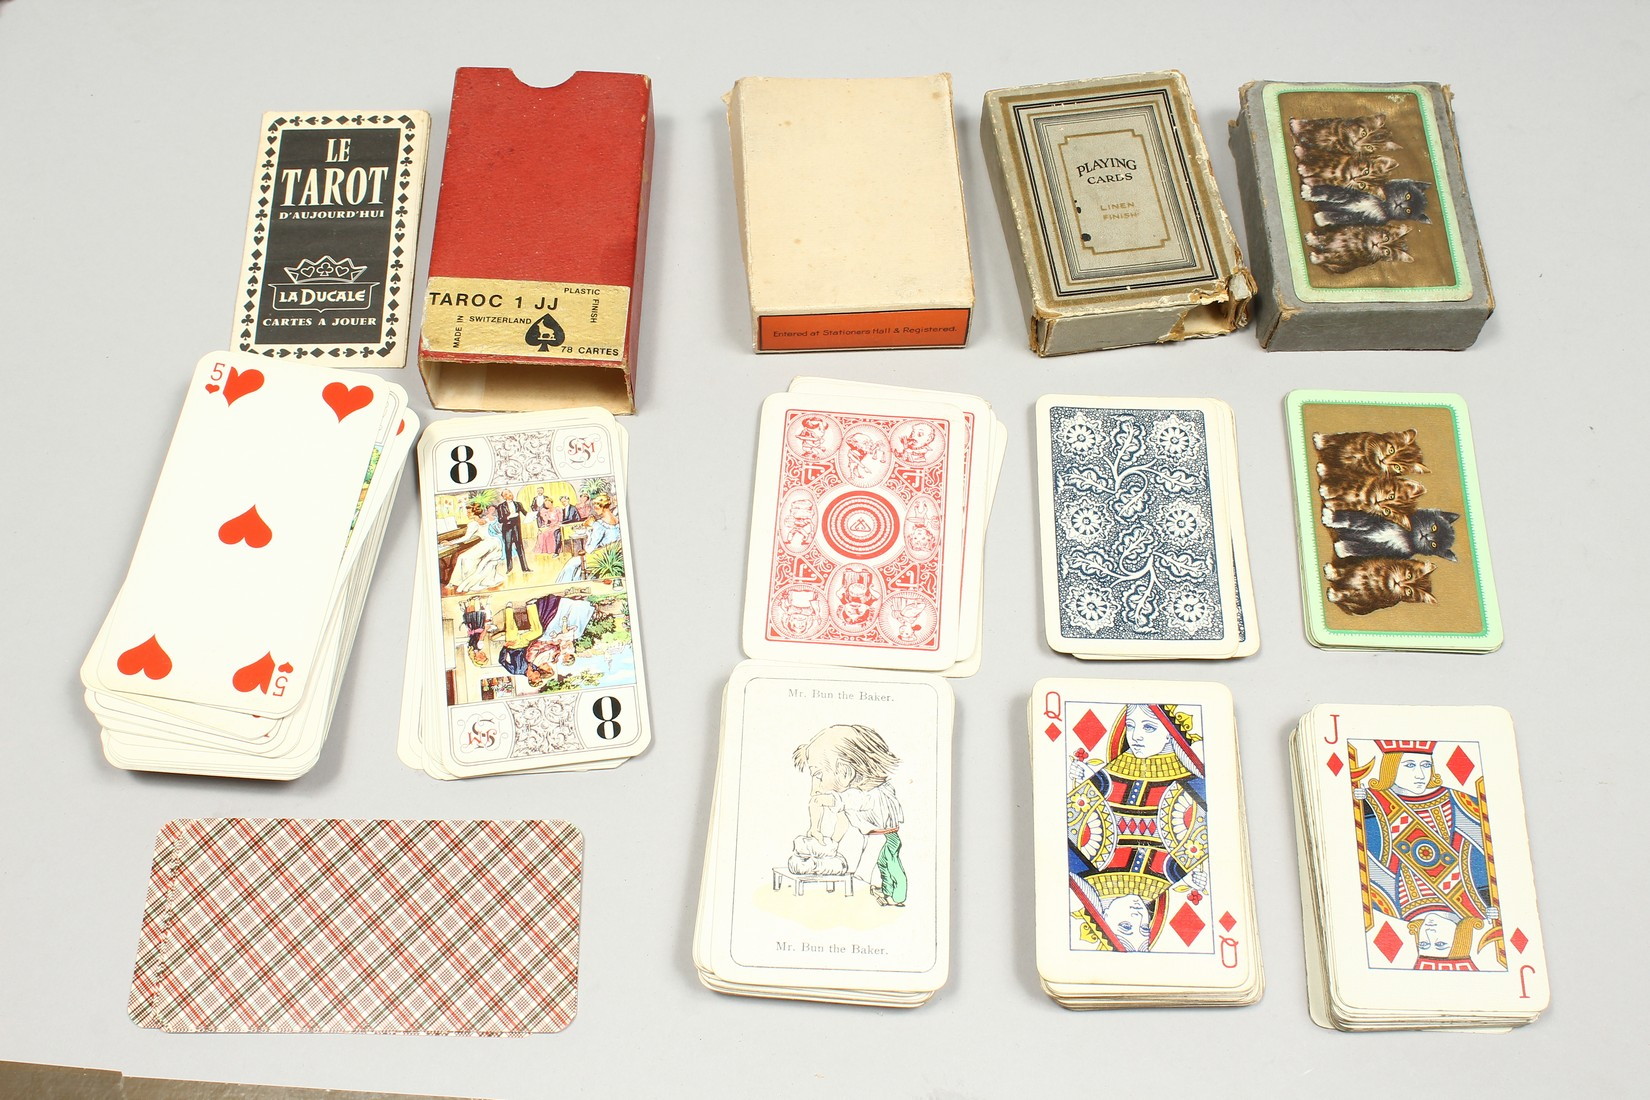 A COLLECTION OF VARIOUS PLAYING CARDS. - Image 16 of 16